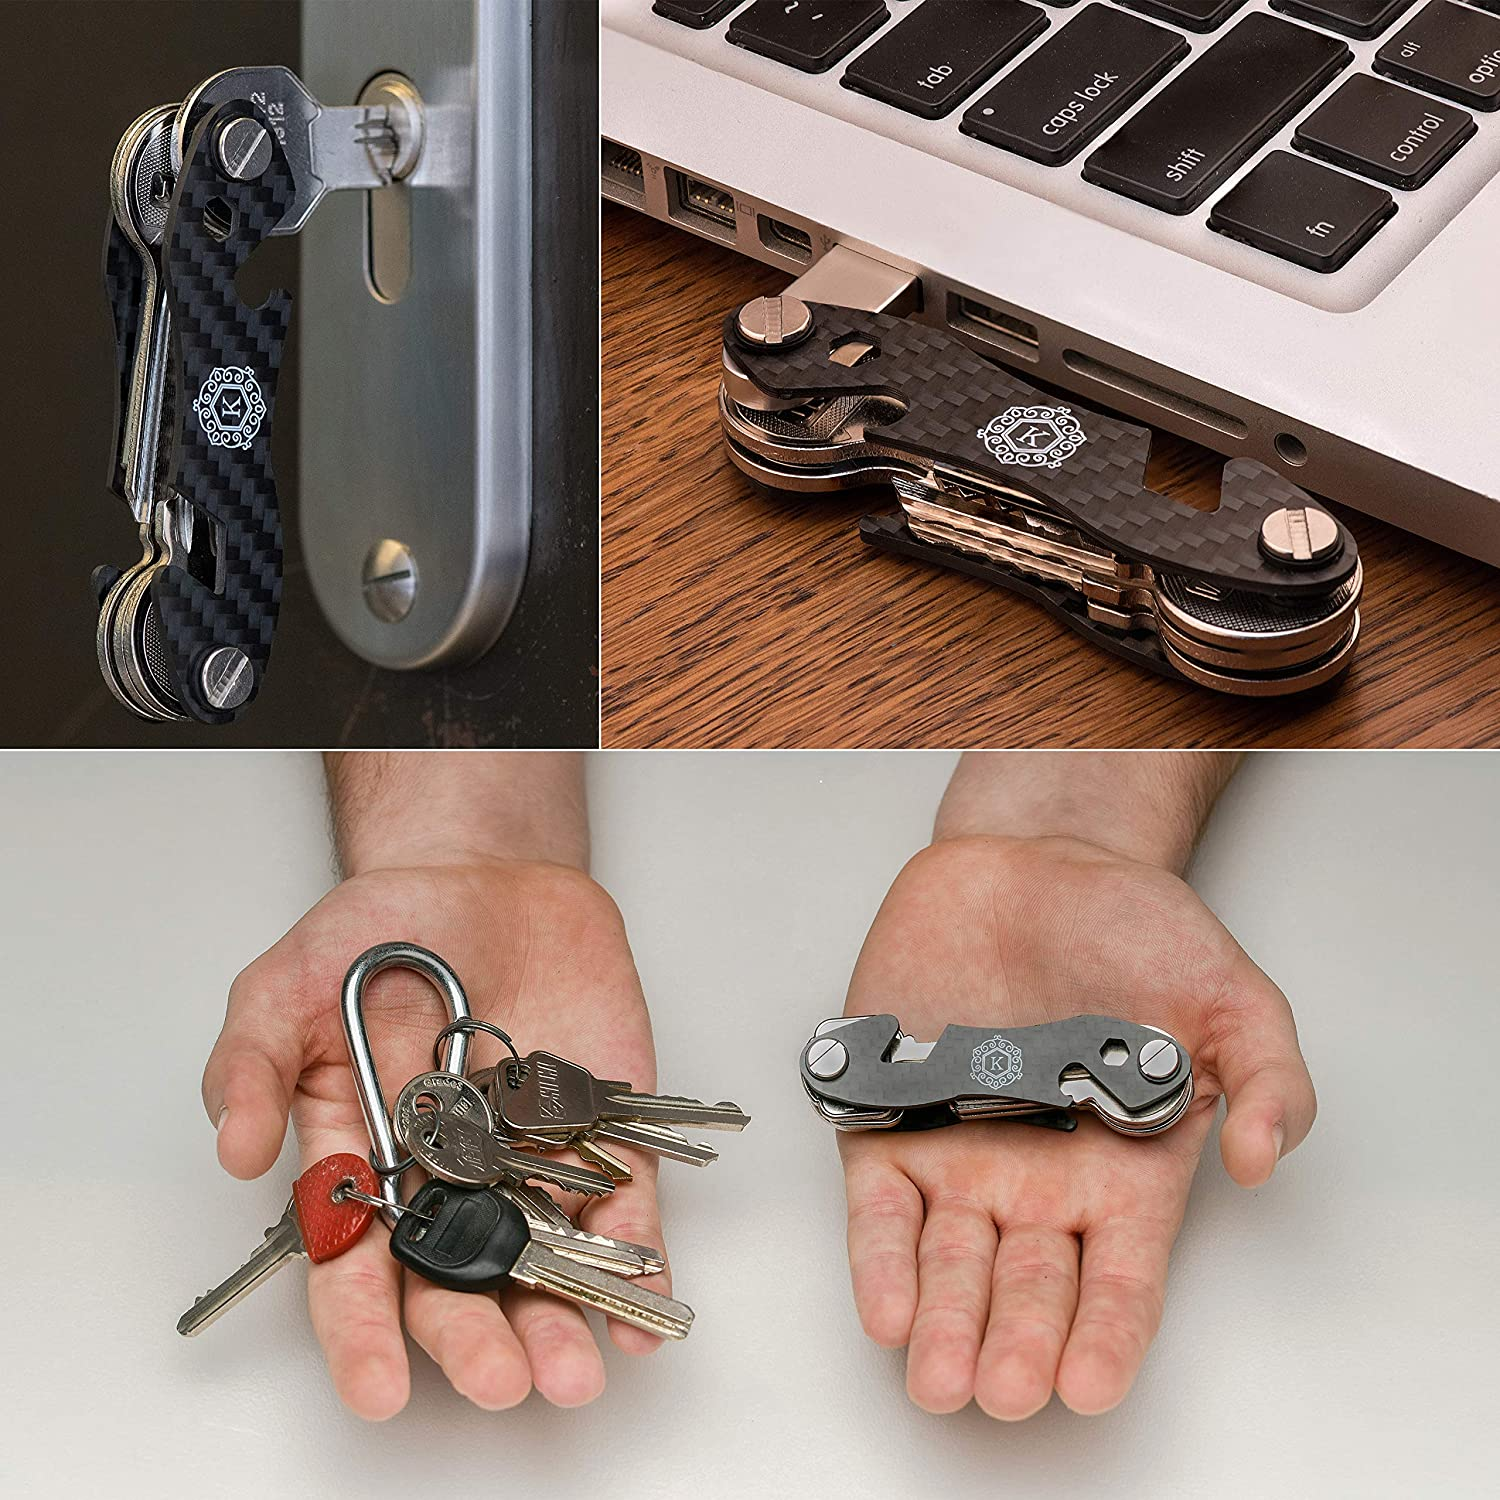 Amazon.com: KINGSMEN Smart Compact Key Holder Organizer ...